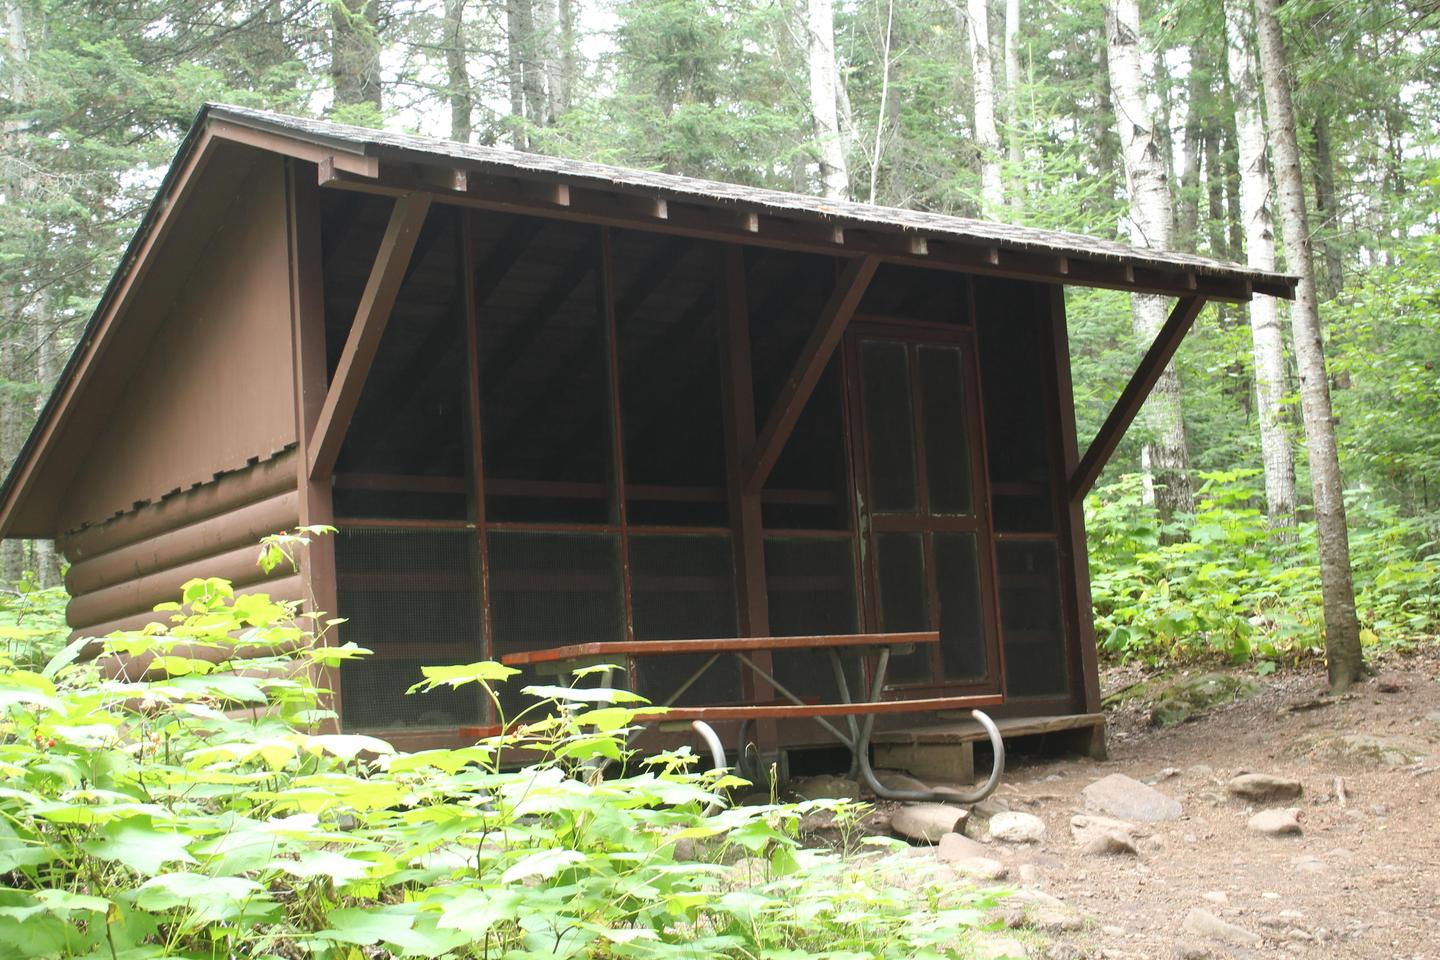 Daisy Farm Campground Shelter Site #19Shelters are popular camping spots on Isle Royale.